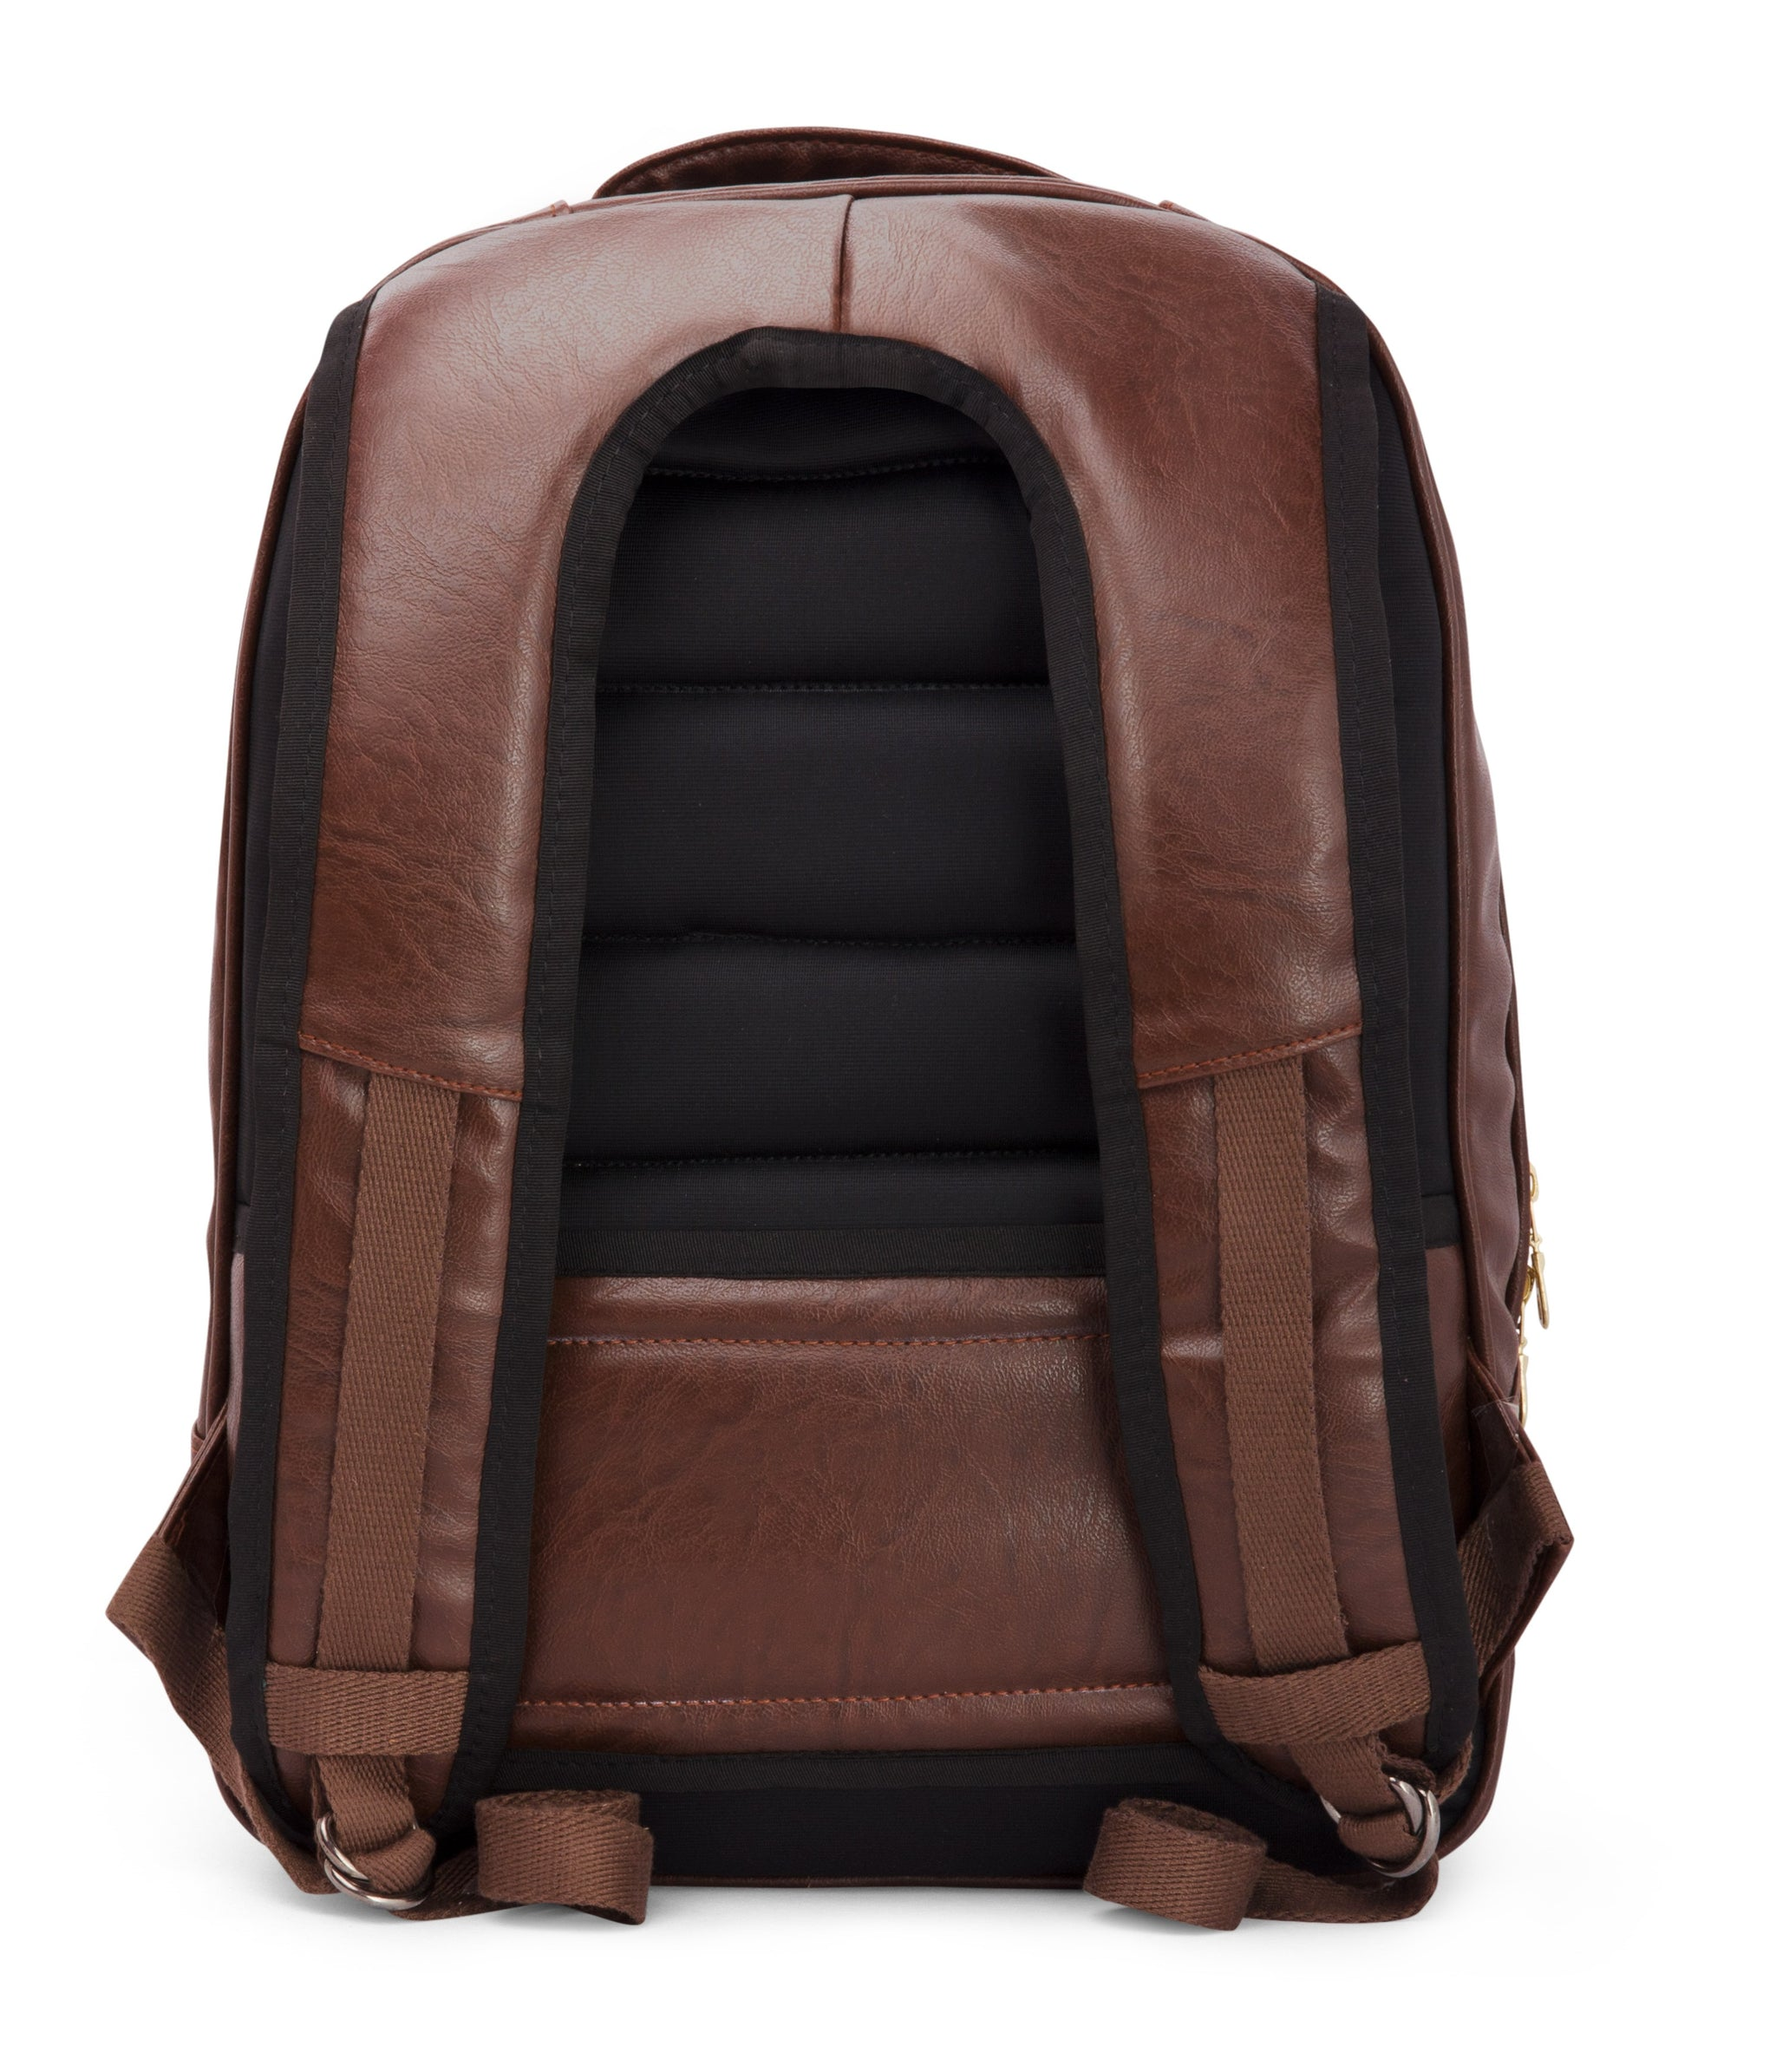 F Gear Glorious 18 Liters Laptop Backpack (Brown)